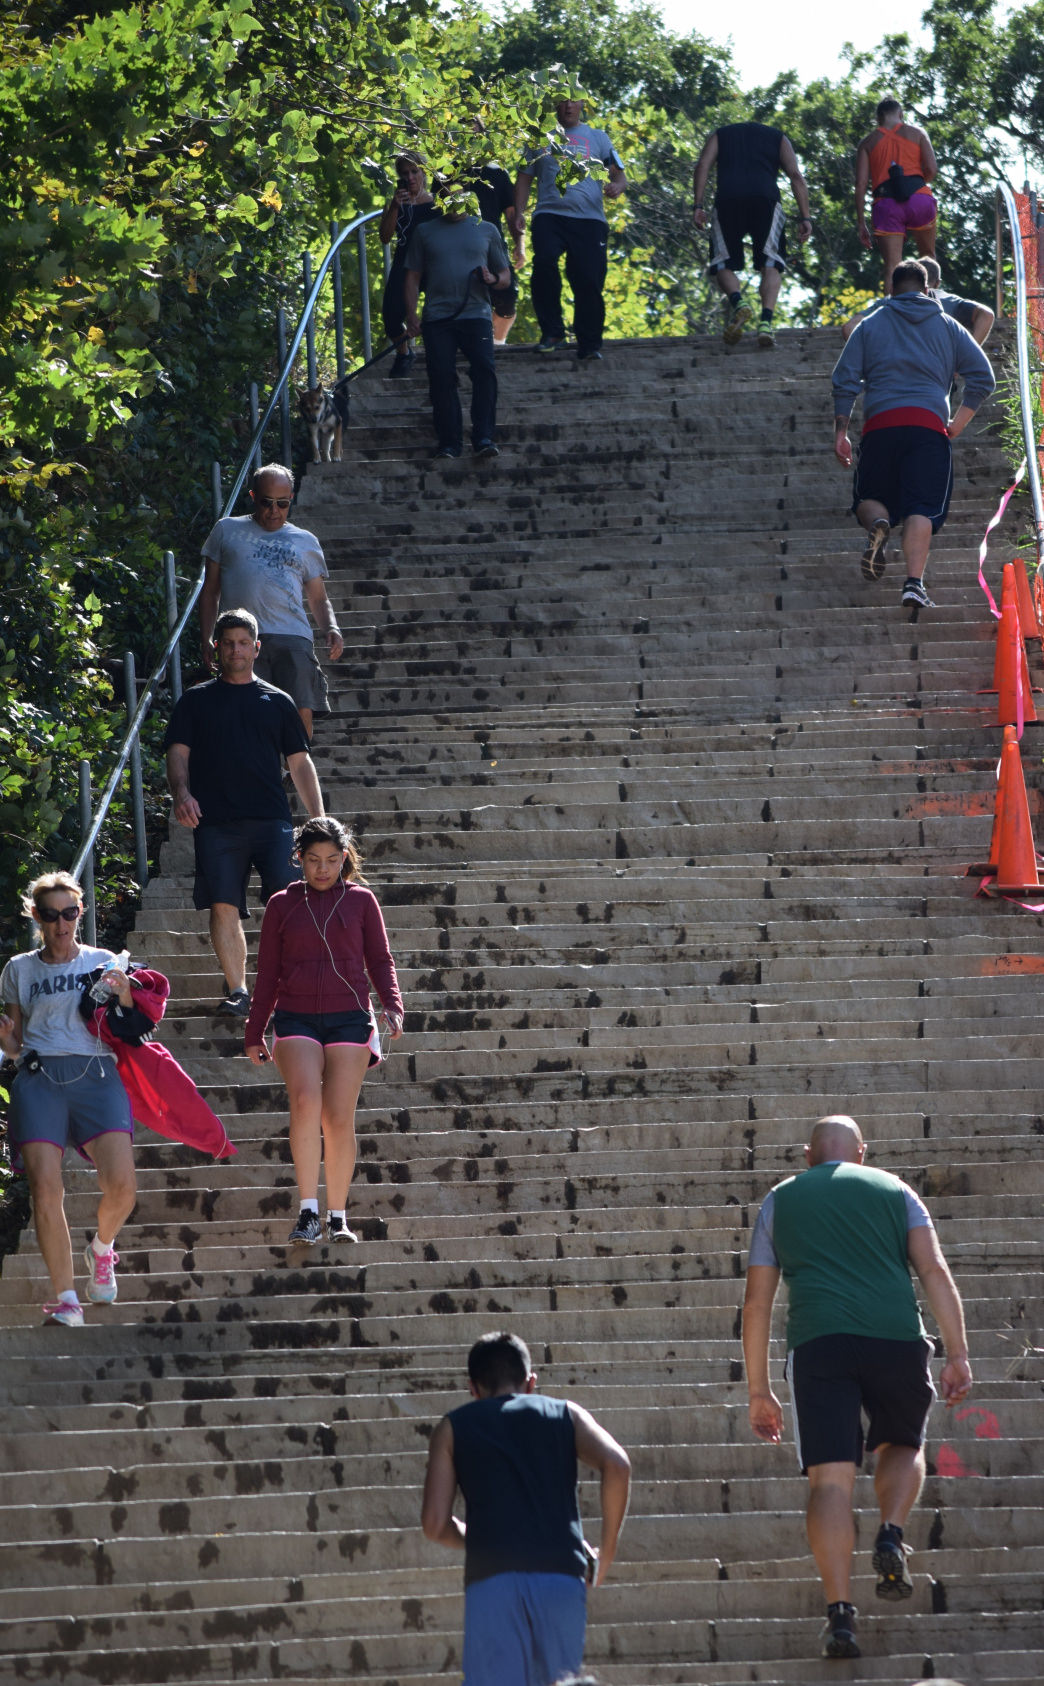 The limestone stairs at Swallow Cliff Woods has become a popular workout spot.